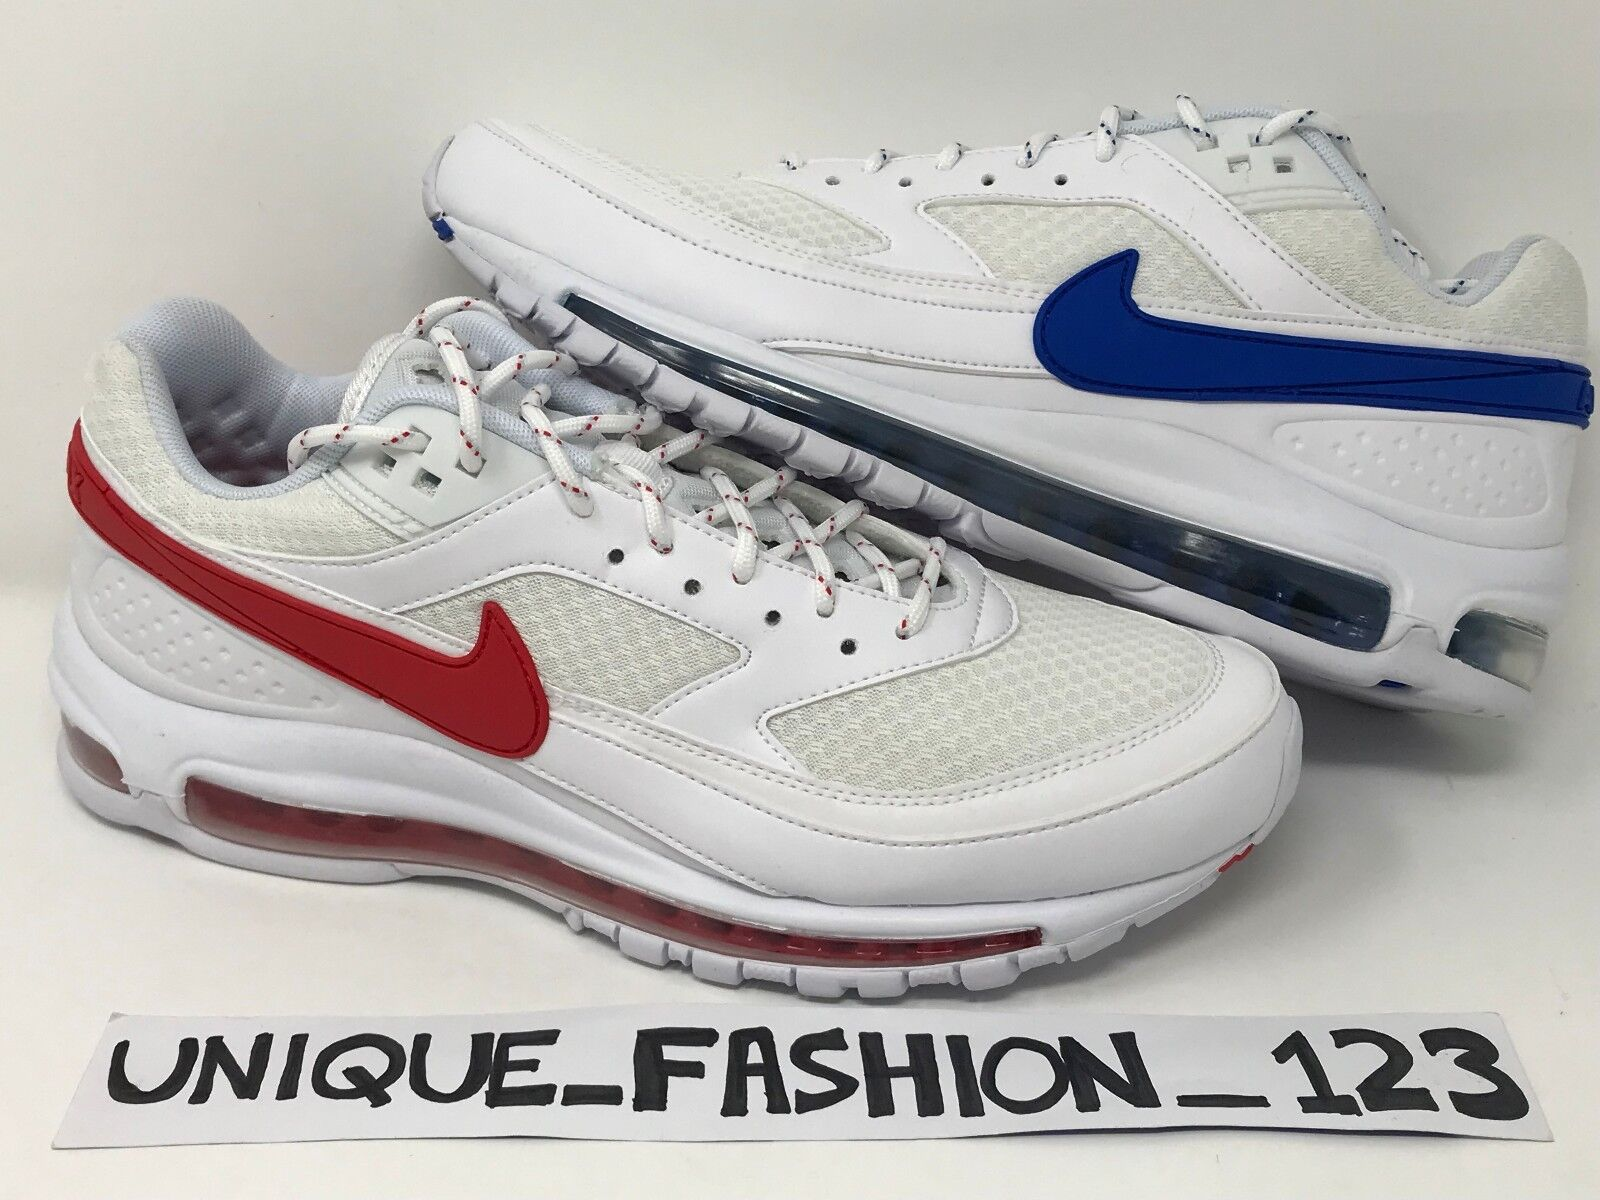 NIKE AIR MAX 97 BW X SKEPTA SK AIR II 2 WHITE RED blueE